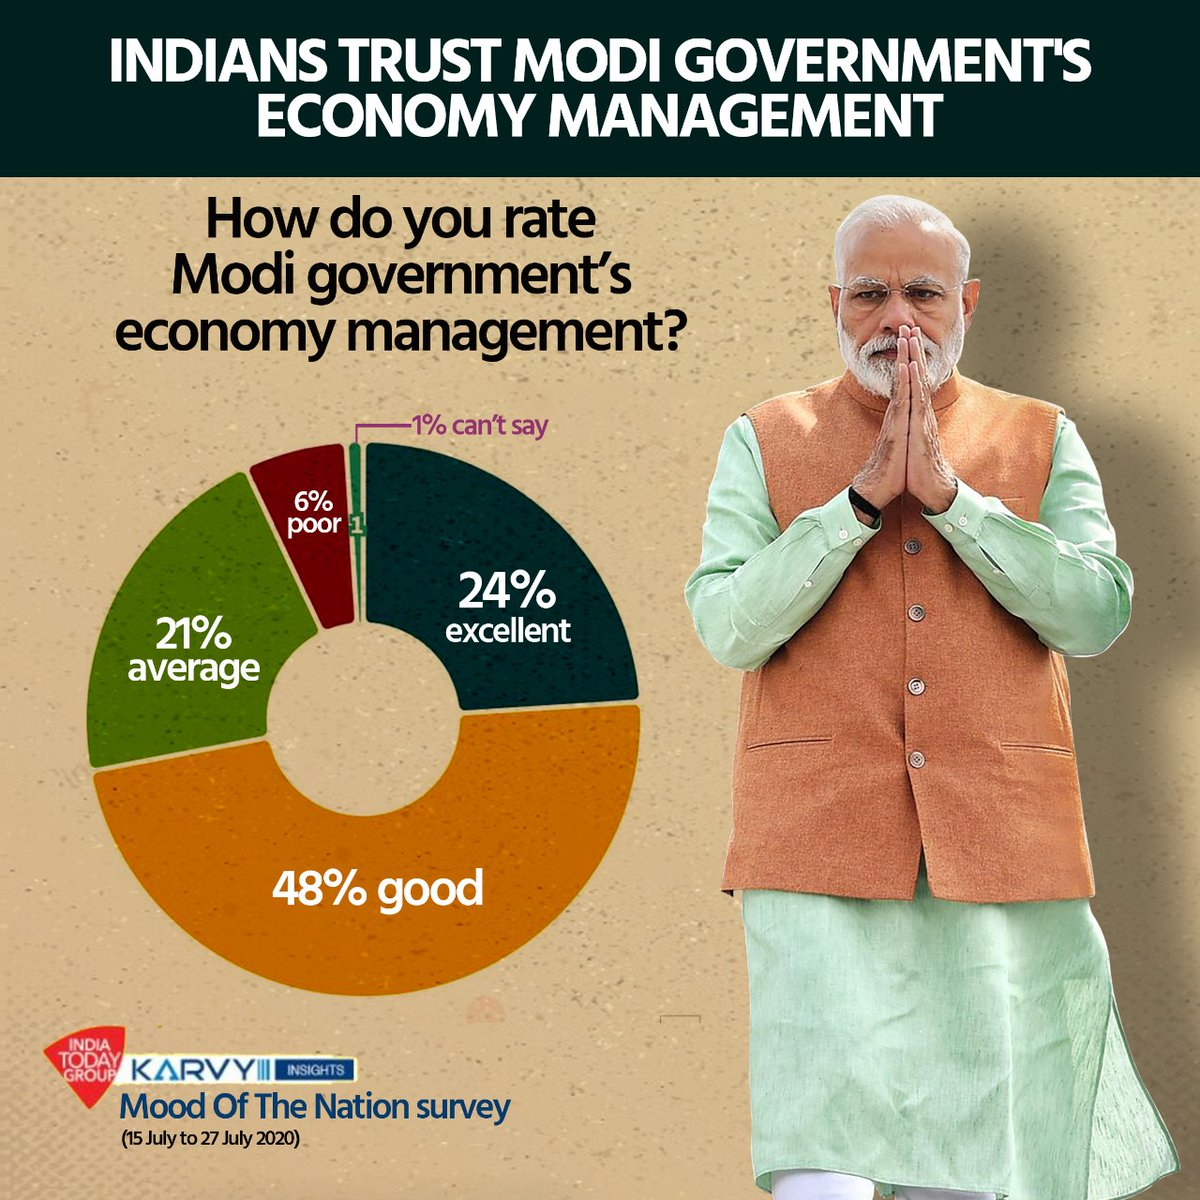 78% happy with Modi govt performance, Shah best minister, Yogi best CM: Mood of The Nation Poll